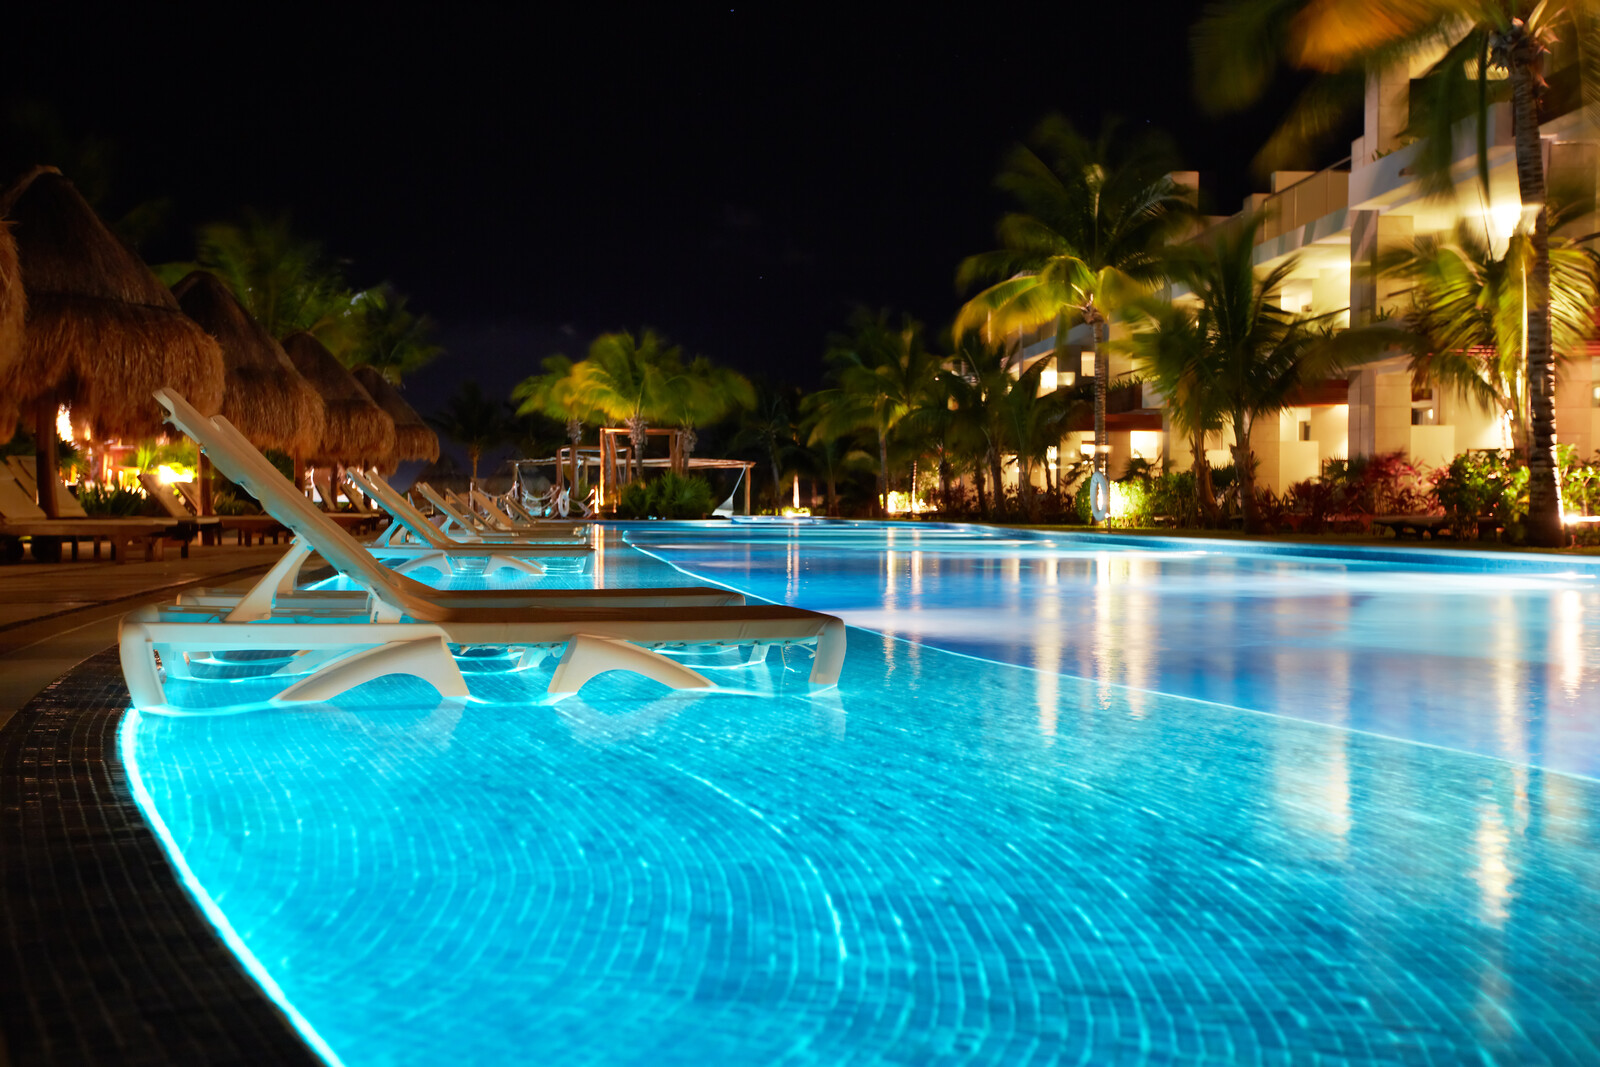 hotel with a quiet wading pool lit up in the evening with lounge chairs set up in the pool and palm frond umbrellas sitting behind the pool